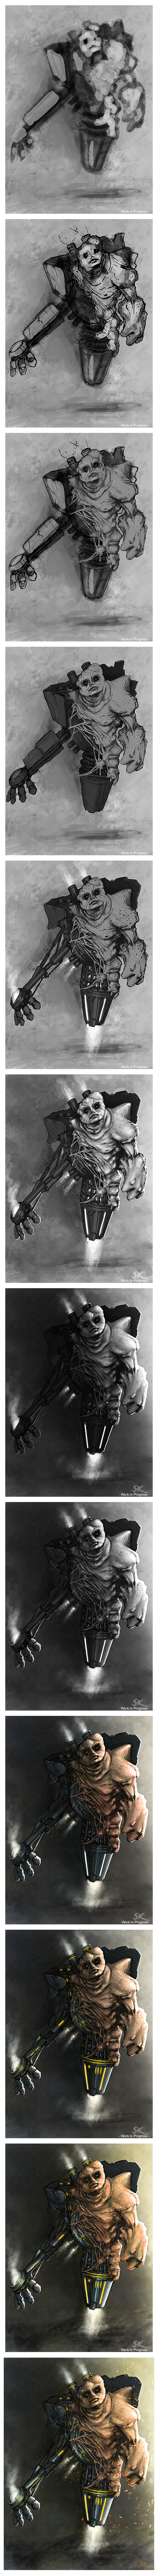 Sylvain's works [UP-Environment_05-P.5] - Page 3 Osmalte___process_by_Sylvain_Klein